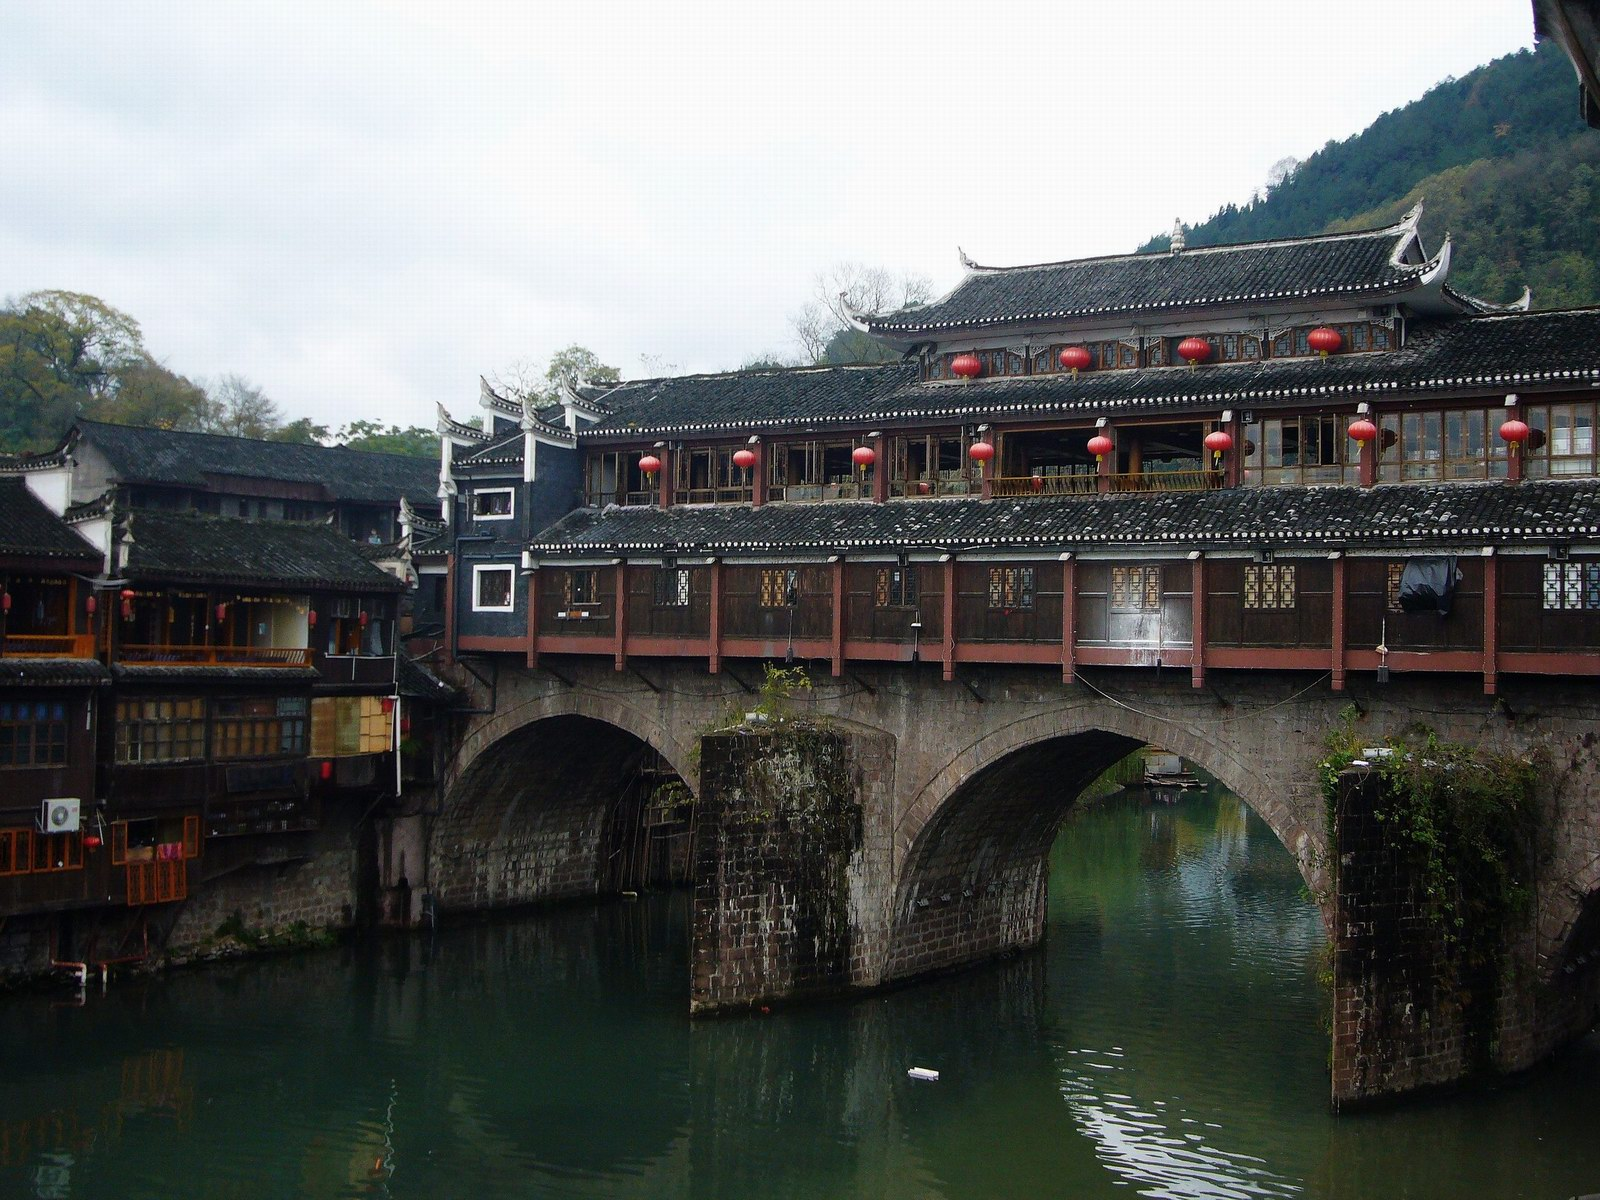 Hunan Fenghuang Ancient